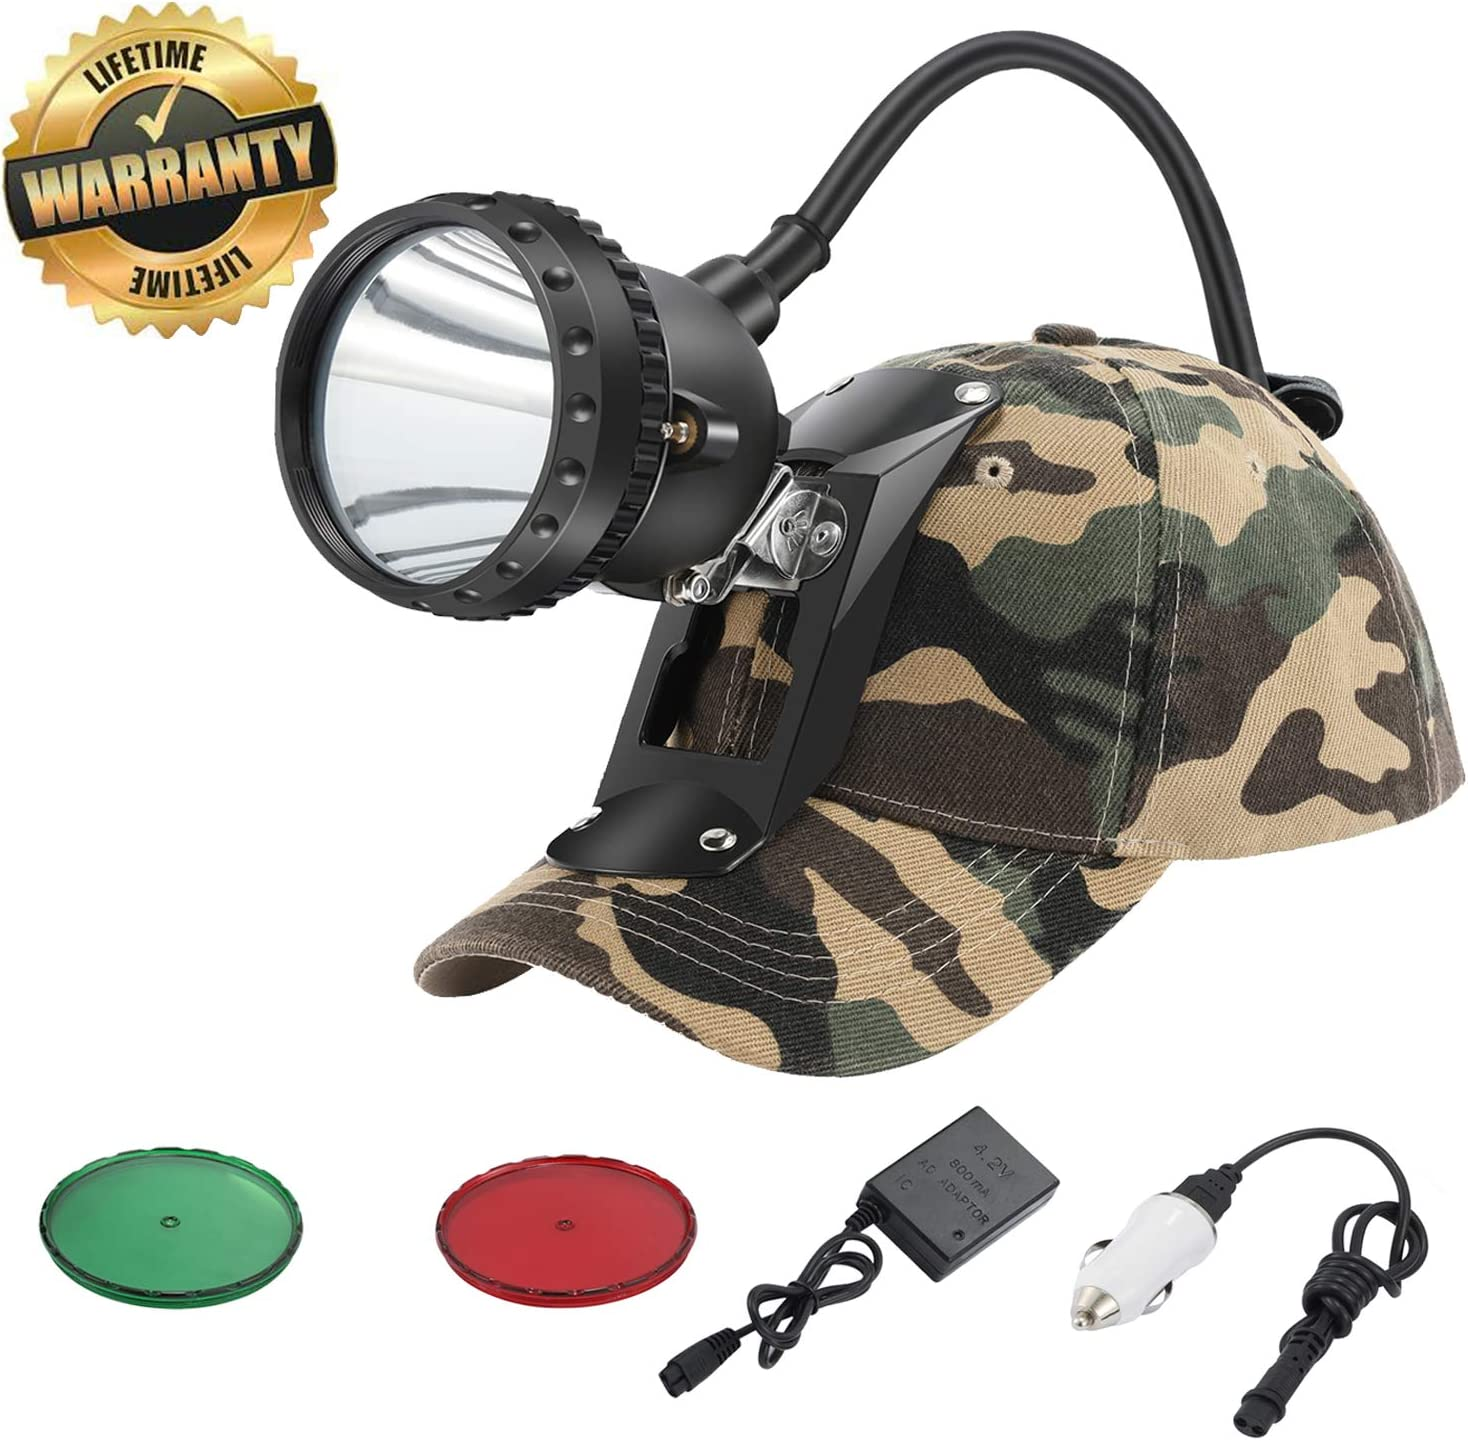 GearOZ Headlamp Flashlight, 4 LED Lighting Modes Rechargeable and Waterproof Headlight for Coon Hunting Camping